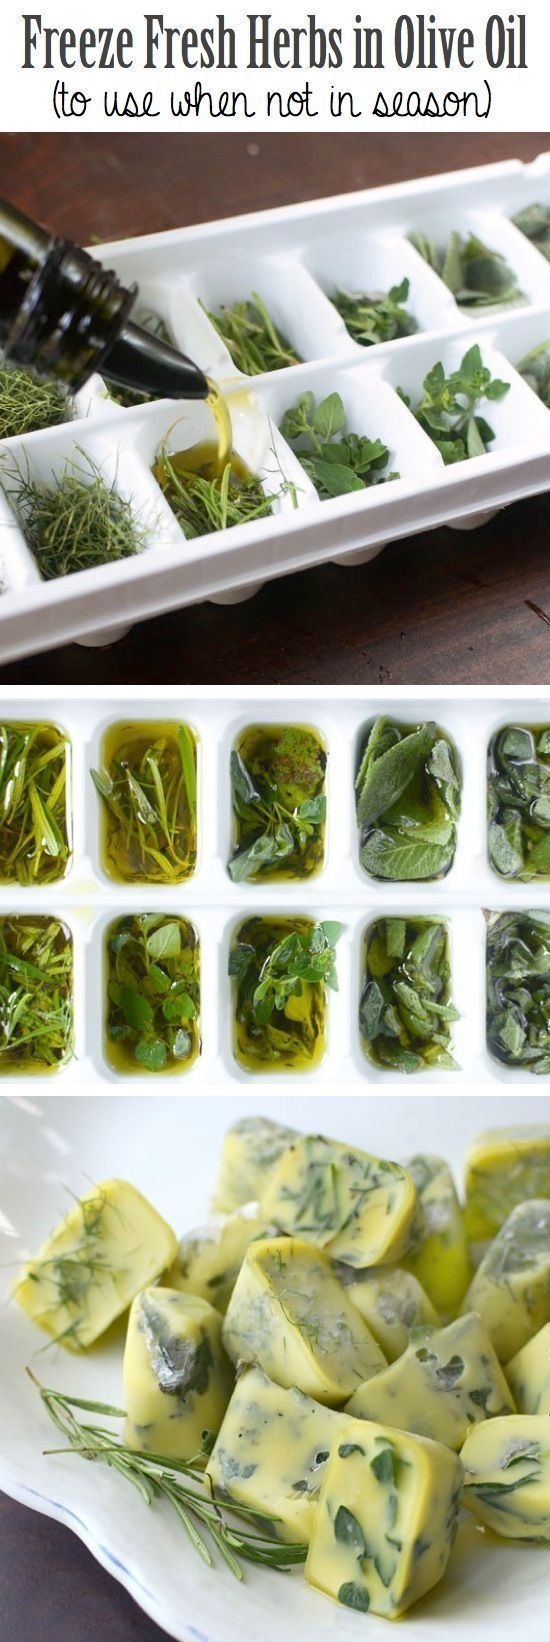 Freezing fresh herbs in ice trays filled with Olive Oil. Once frozen, pop cubes into labeled freezer zip bags and store in your freezer. Any Italian, Greek, French, or Spanish/Mexican leafy herbs can be used. Mints can be dried, or made into extracts using vodka, and some frozen in olive oil for Mediterranean style or North African dishes. Asian leaf herbs could be frozen in light olive or good quality peanut oil. Seeds need drying, should be ground, and crushed or toasted, some herbs will